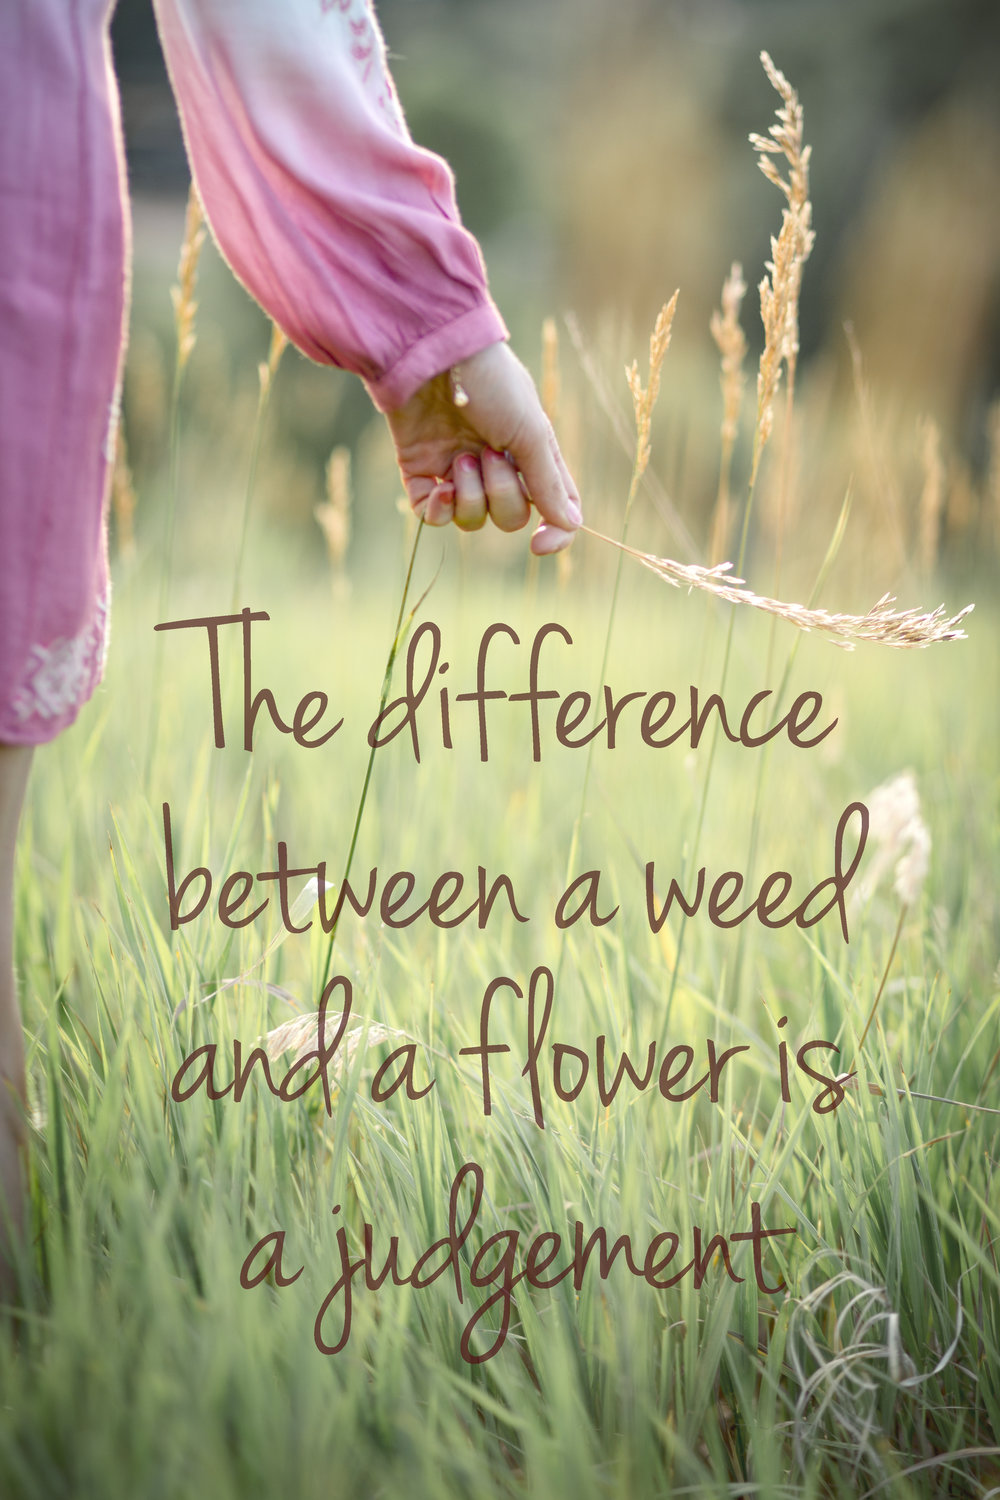 the difference between a weed and a flower is a judgement